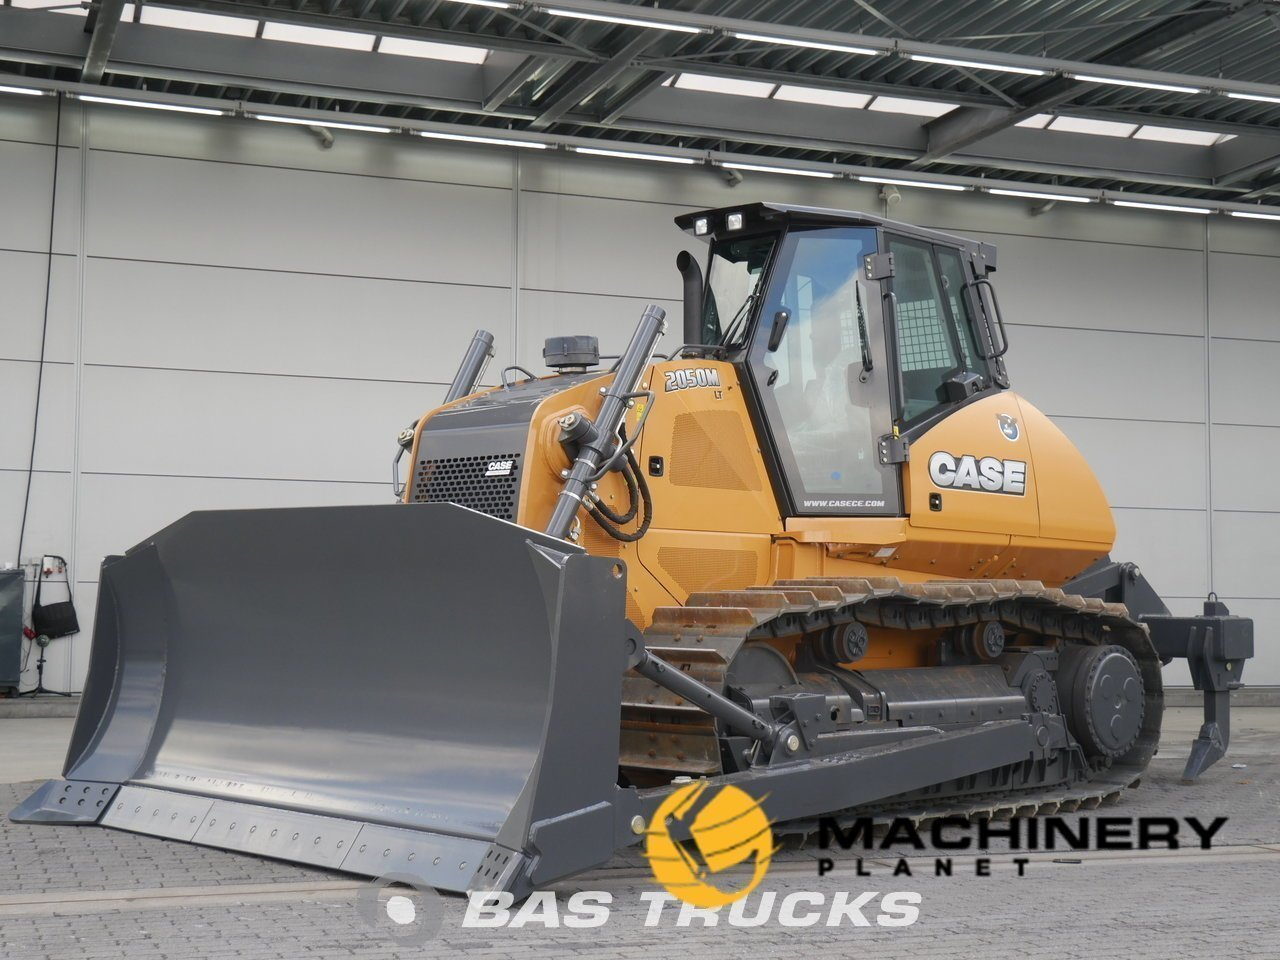 Used-Construction-equipment-Case-2050M-LT-Track-2015_134751_1-1553948110319_5c9f5dce4ddde-1.jpg